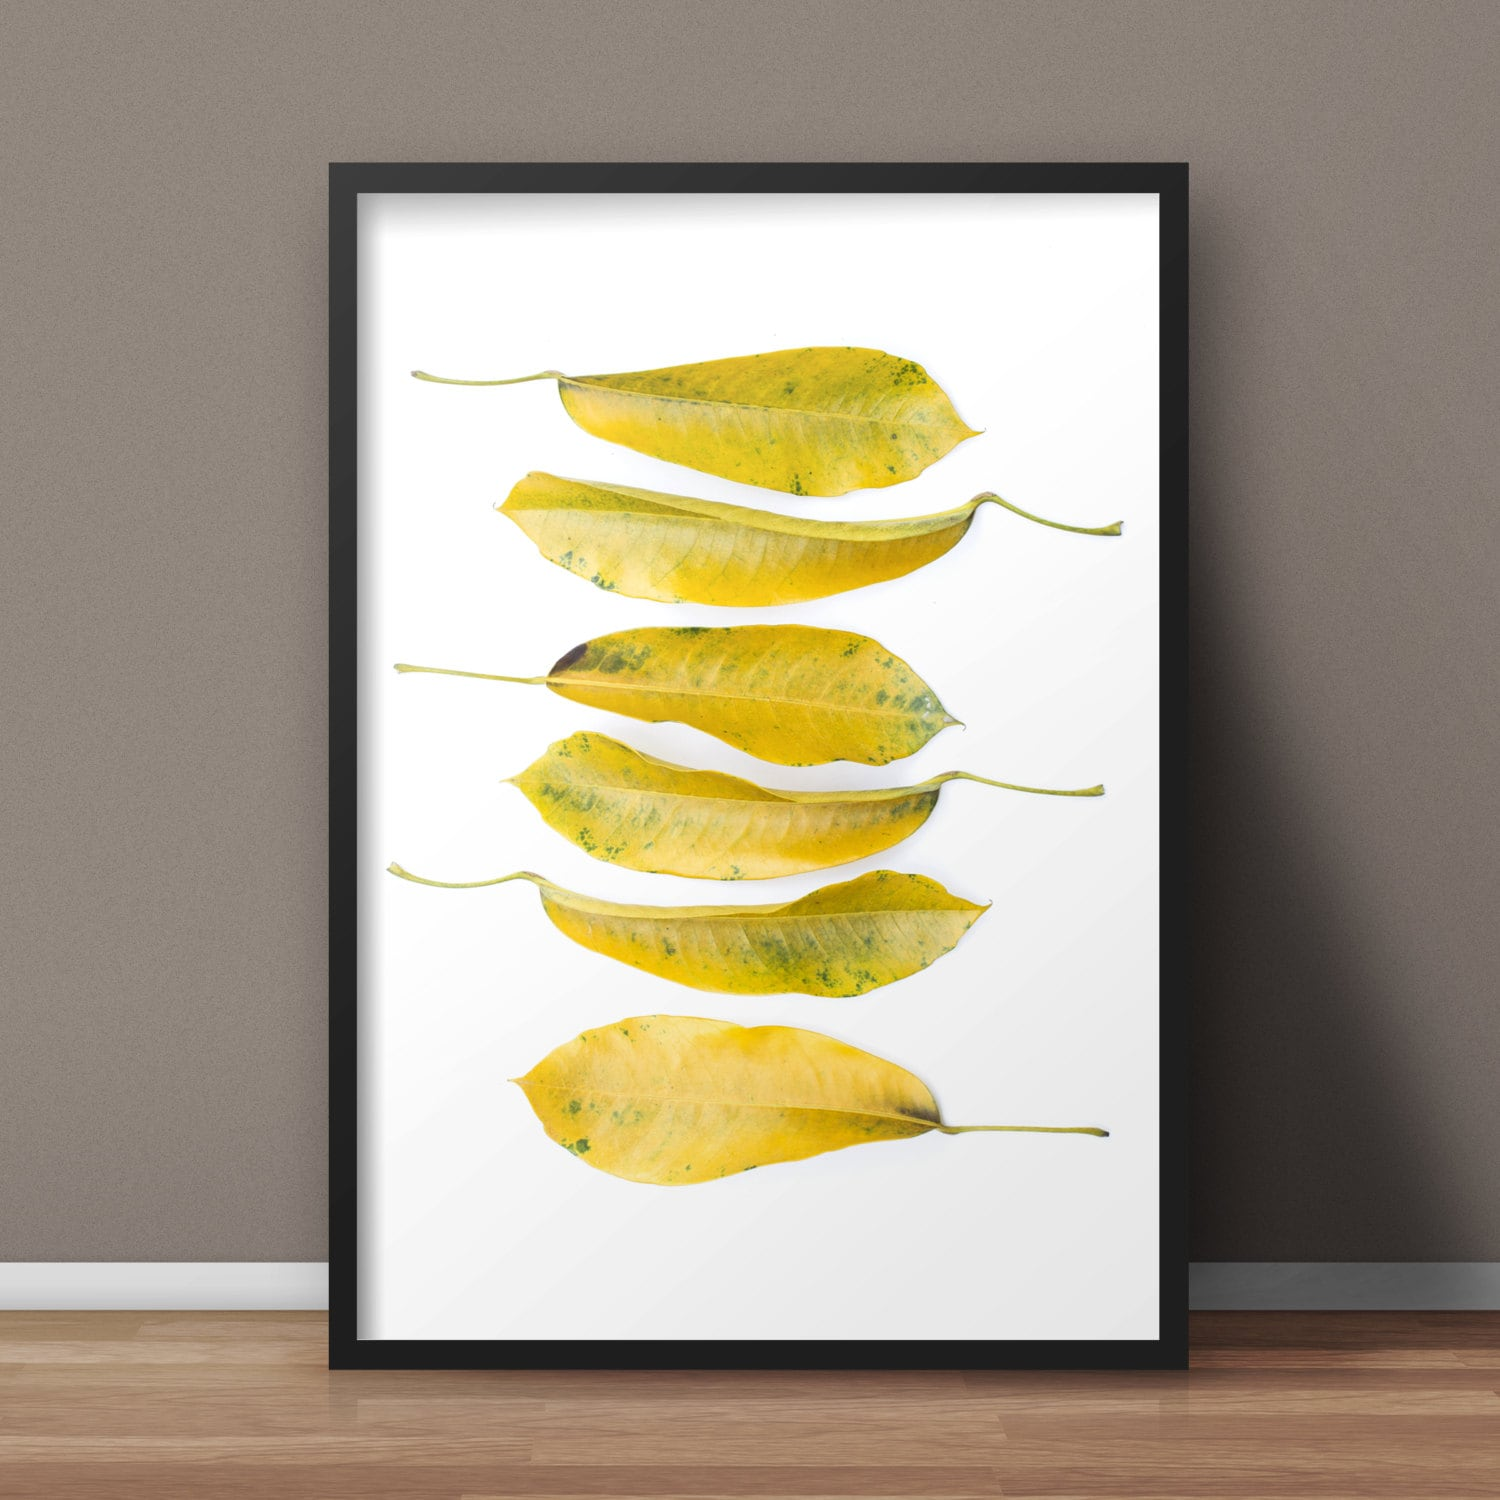 Excellent Leaf Wall Art Ideas - The Wall Art Decorations ...